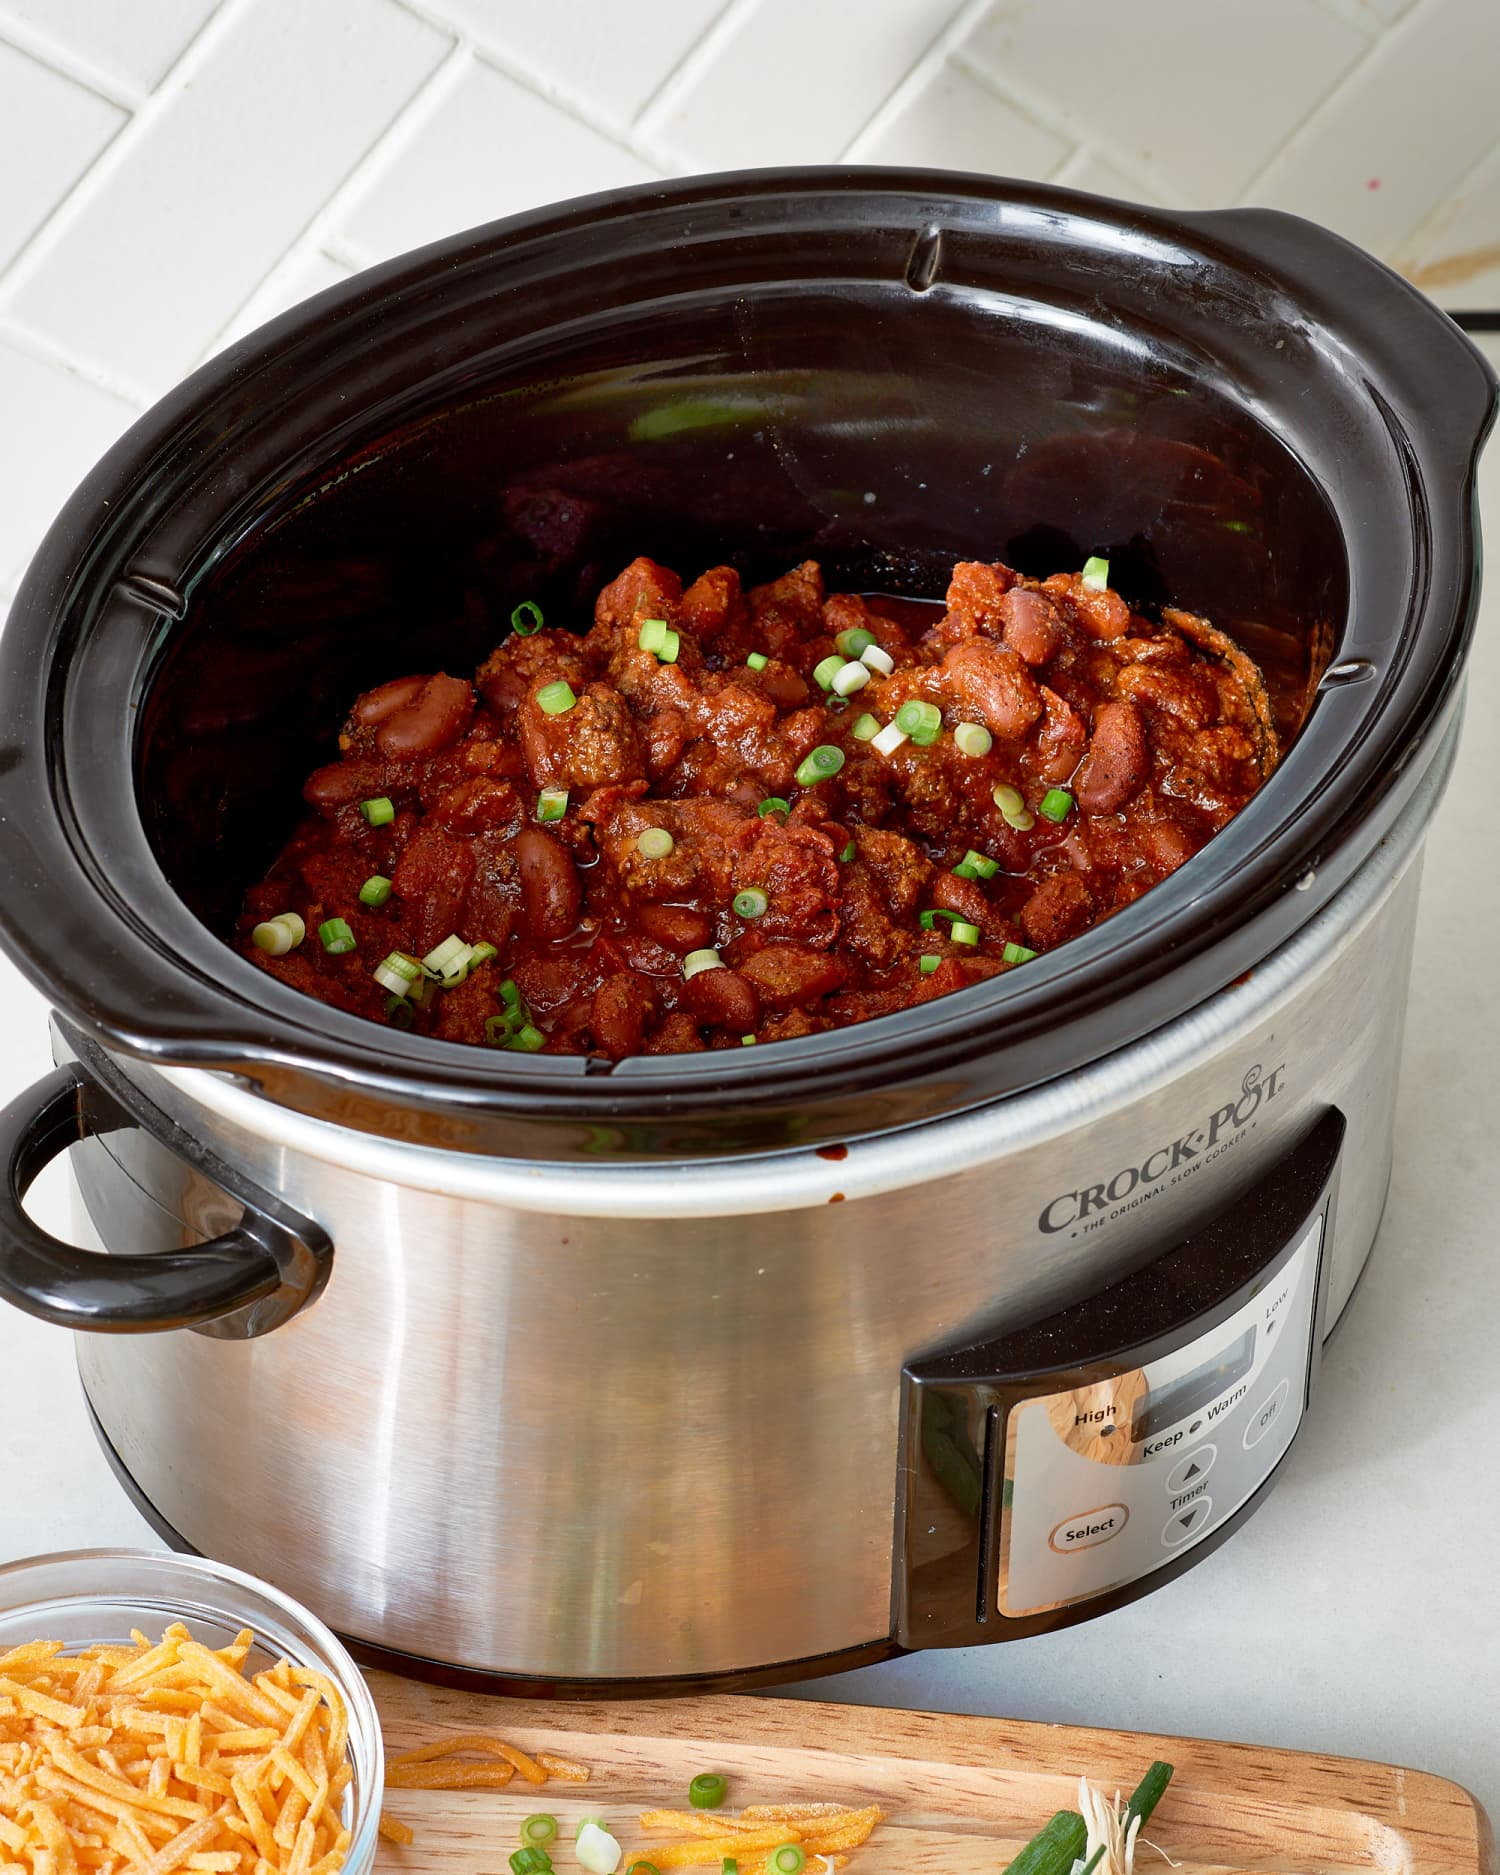 8 Chili Recipes to Make in the Slow Cooker